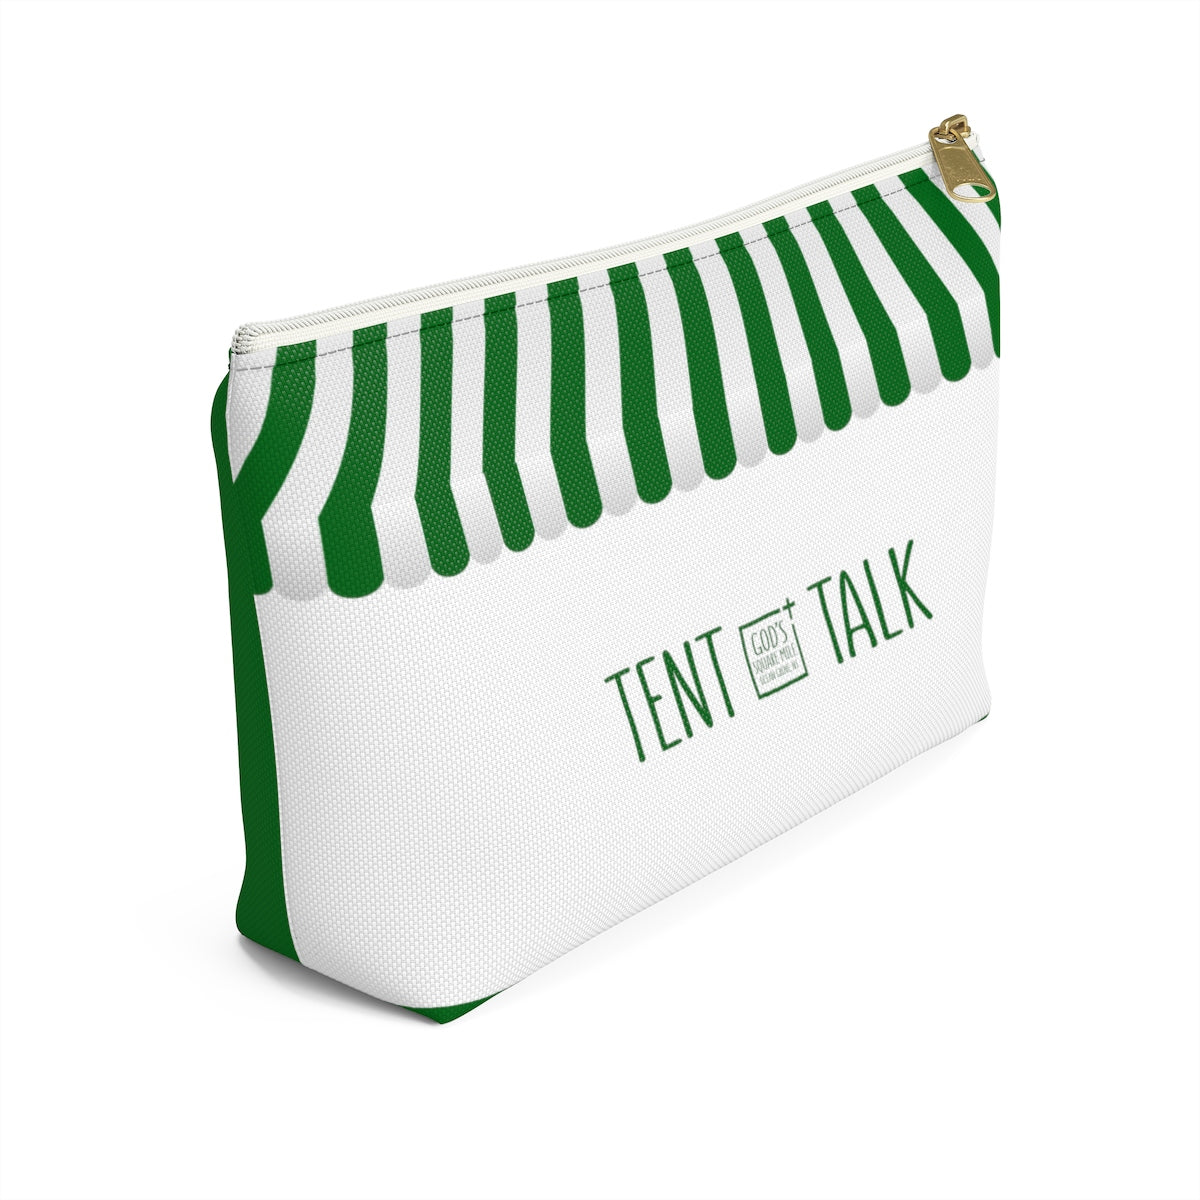 Tent Talk Accessory Bag: Green and White Stripe